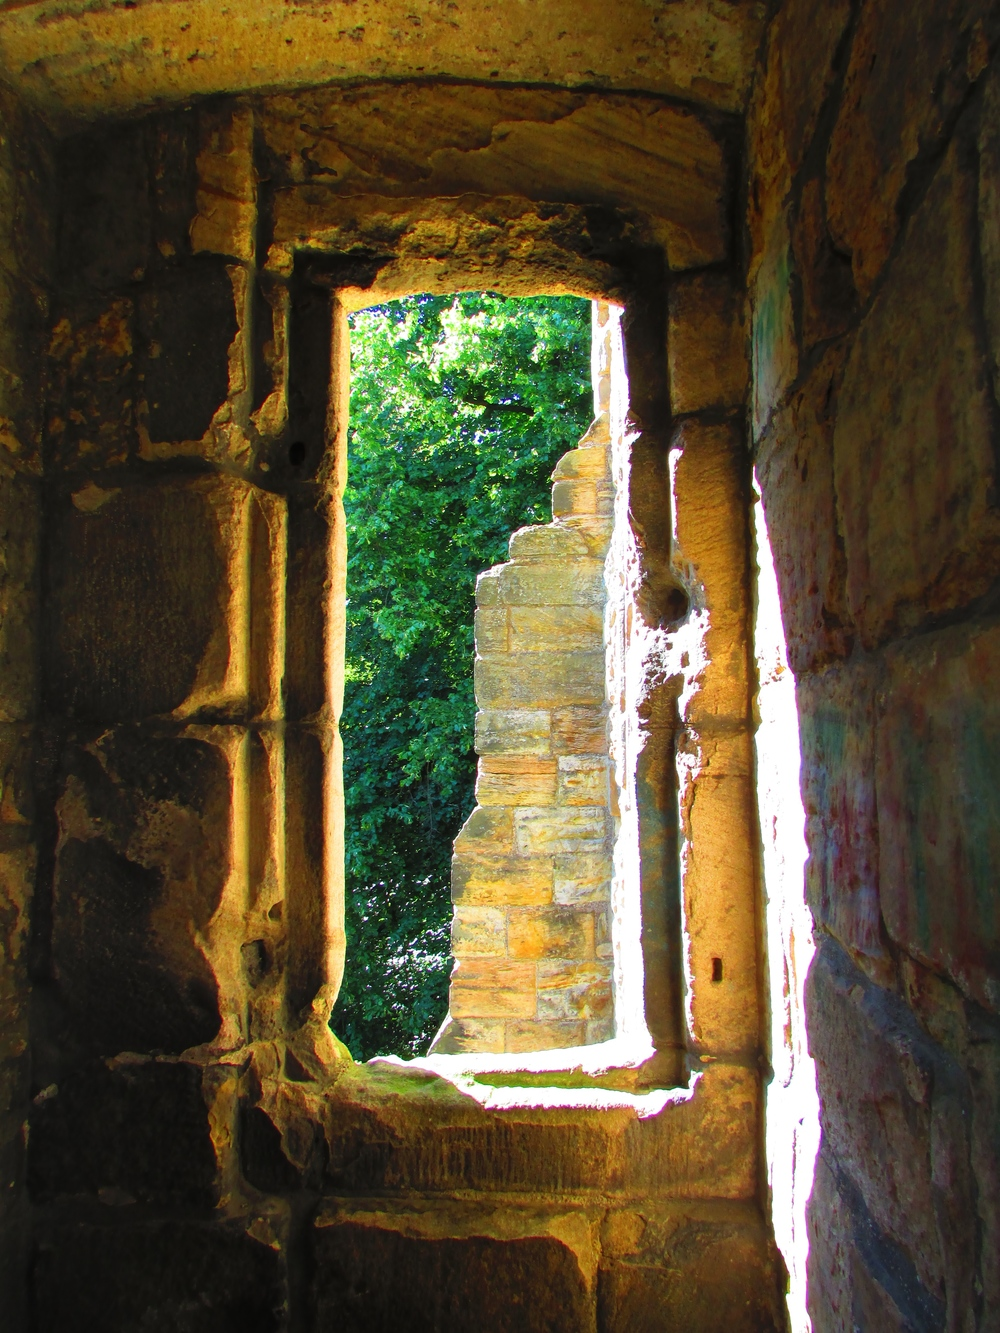 The ruins of Dunfermline Palace in Scotland